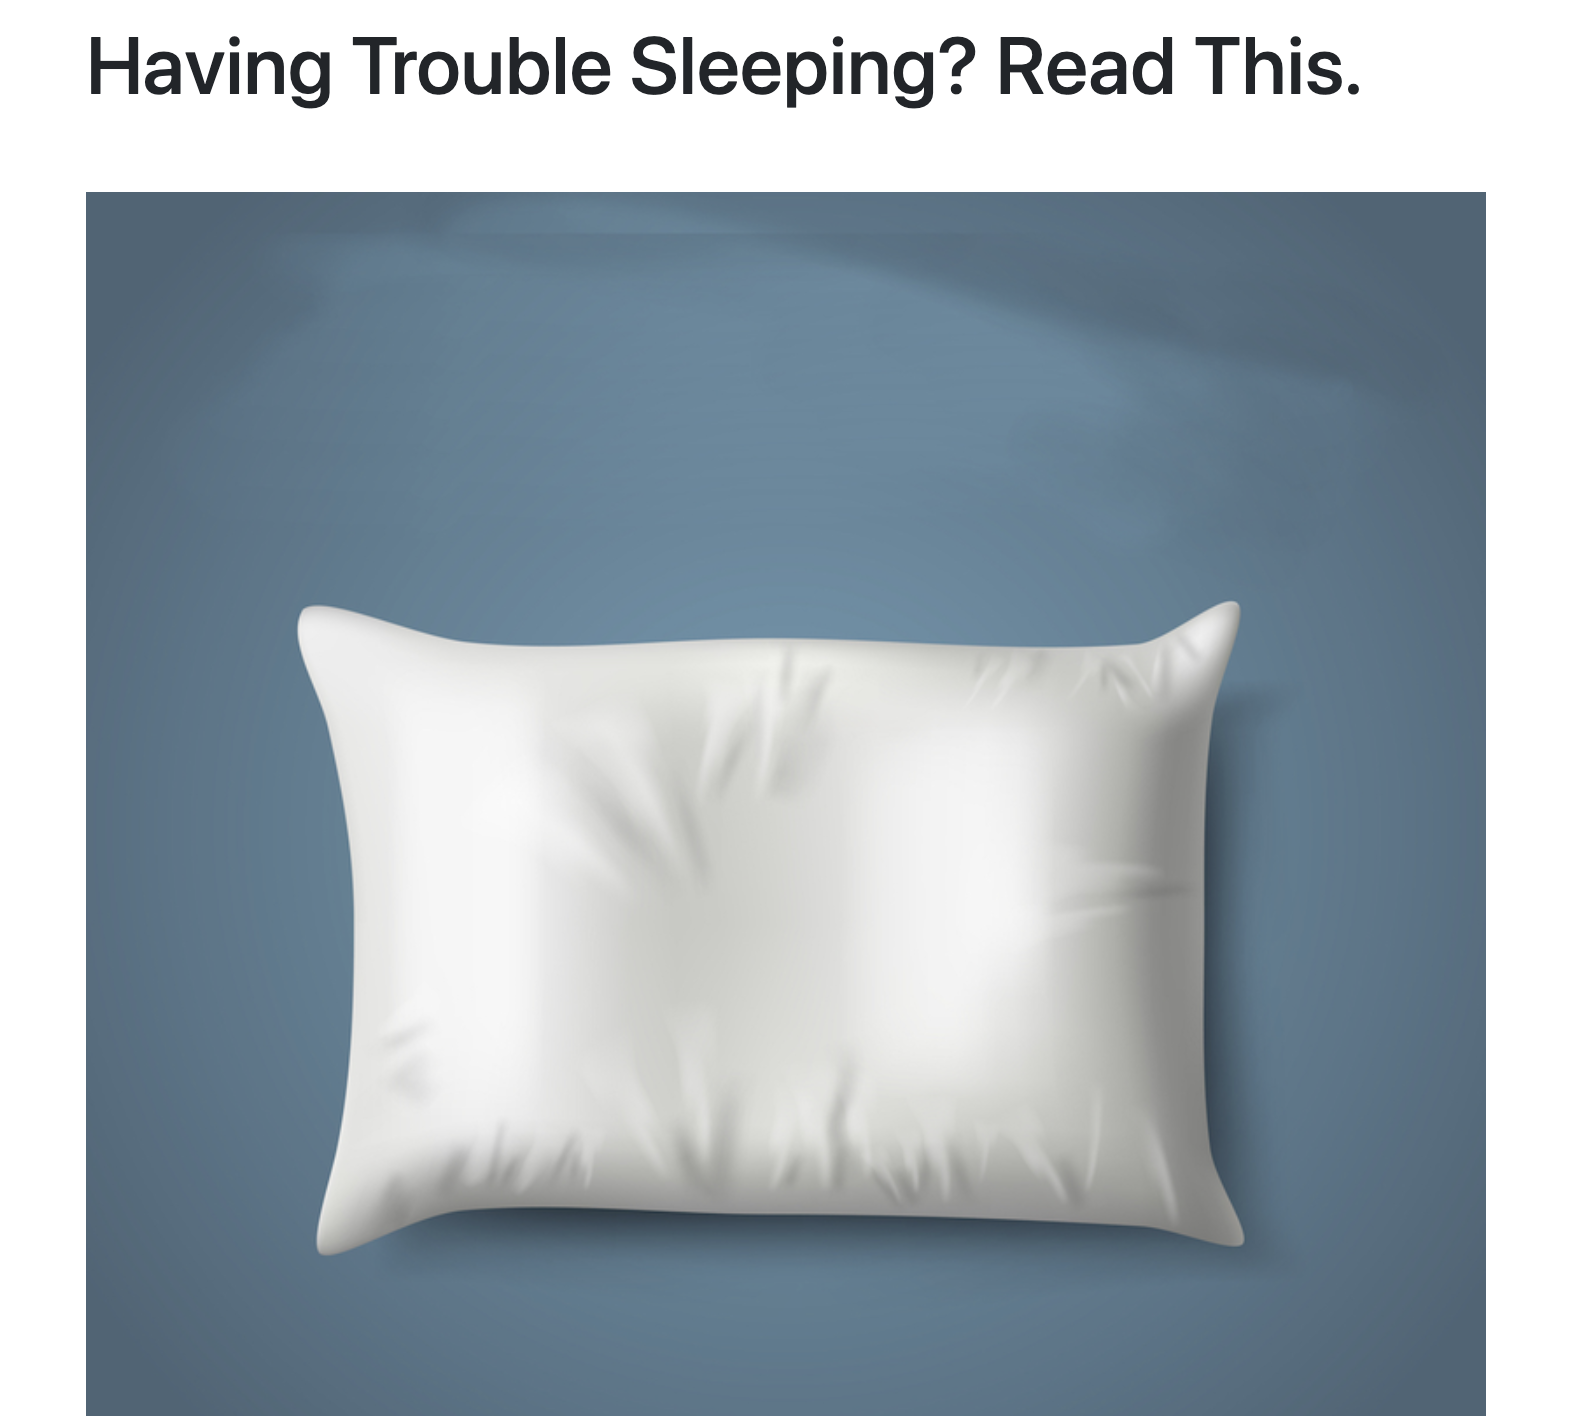 Having Trouble Sleeping?